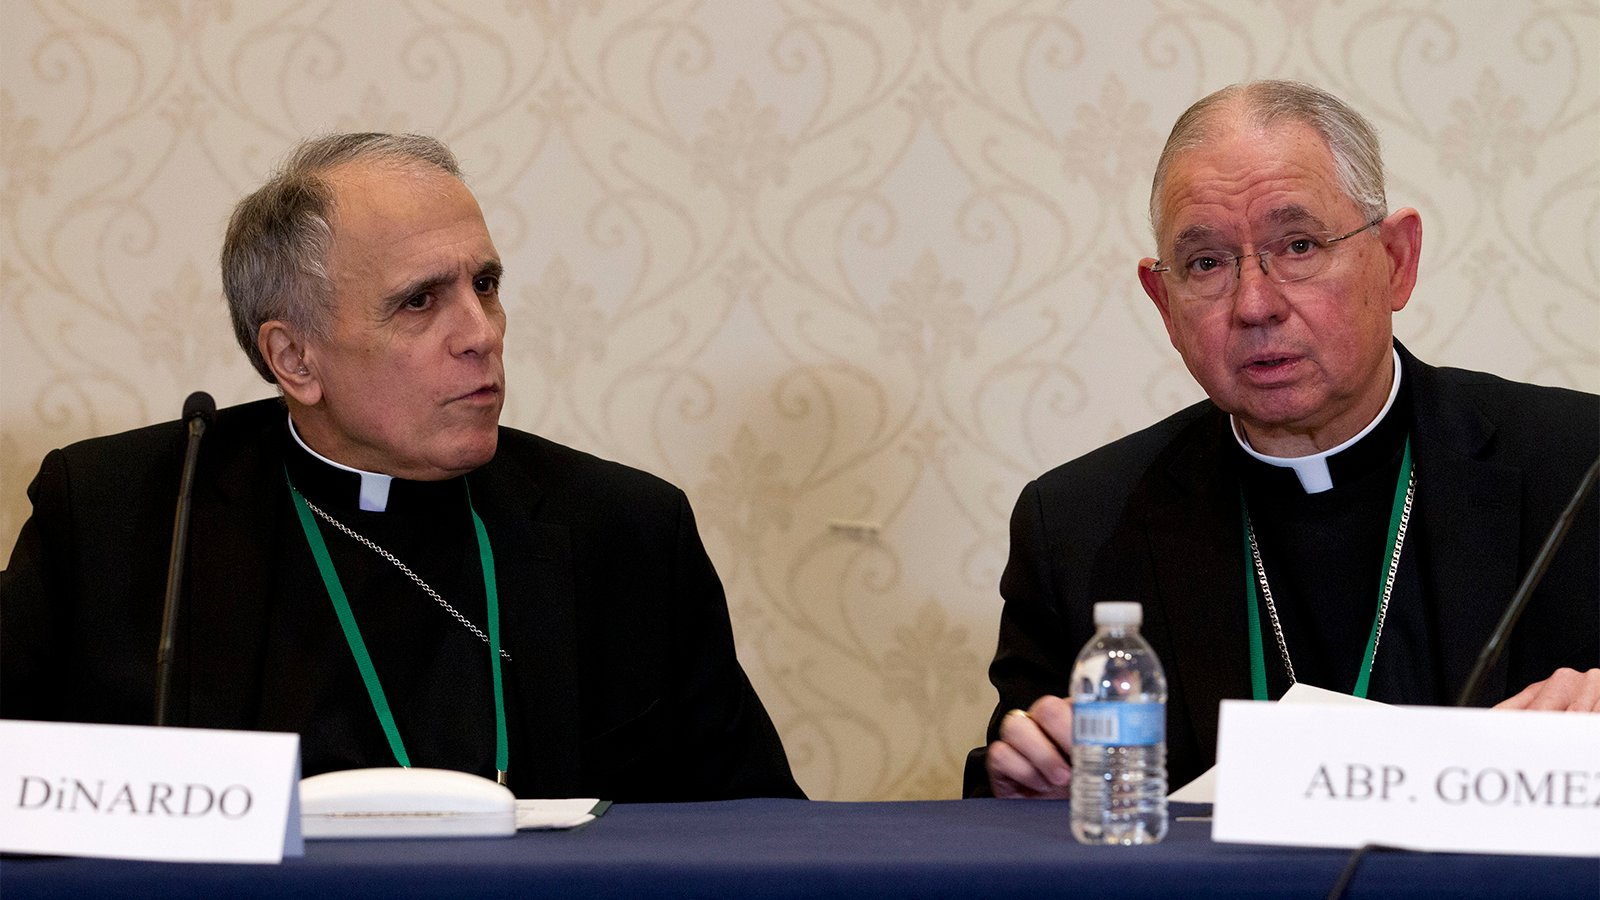 Cardinal Daniel DiNardo, left, of the Archdiocese of Galveston-Houston, and Archbishop José Gomez, of Los Angeles, speak during a news conference at the United States Conference of Catholic Bishops (USCCB) 2019 Spring meetings in Baltimore, Tuesday, June 11, 2019. (AP Photo/Jose Luis Magana)